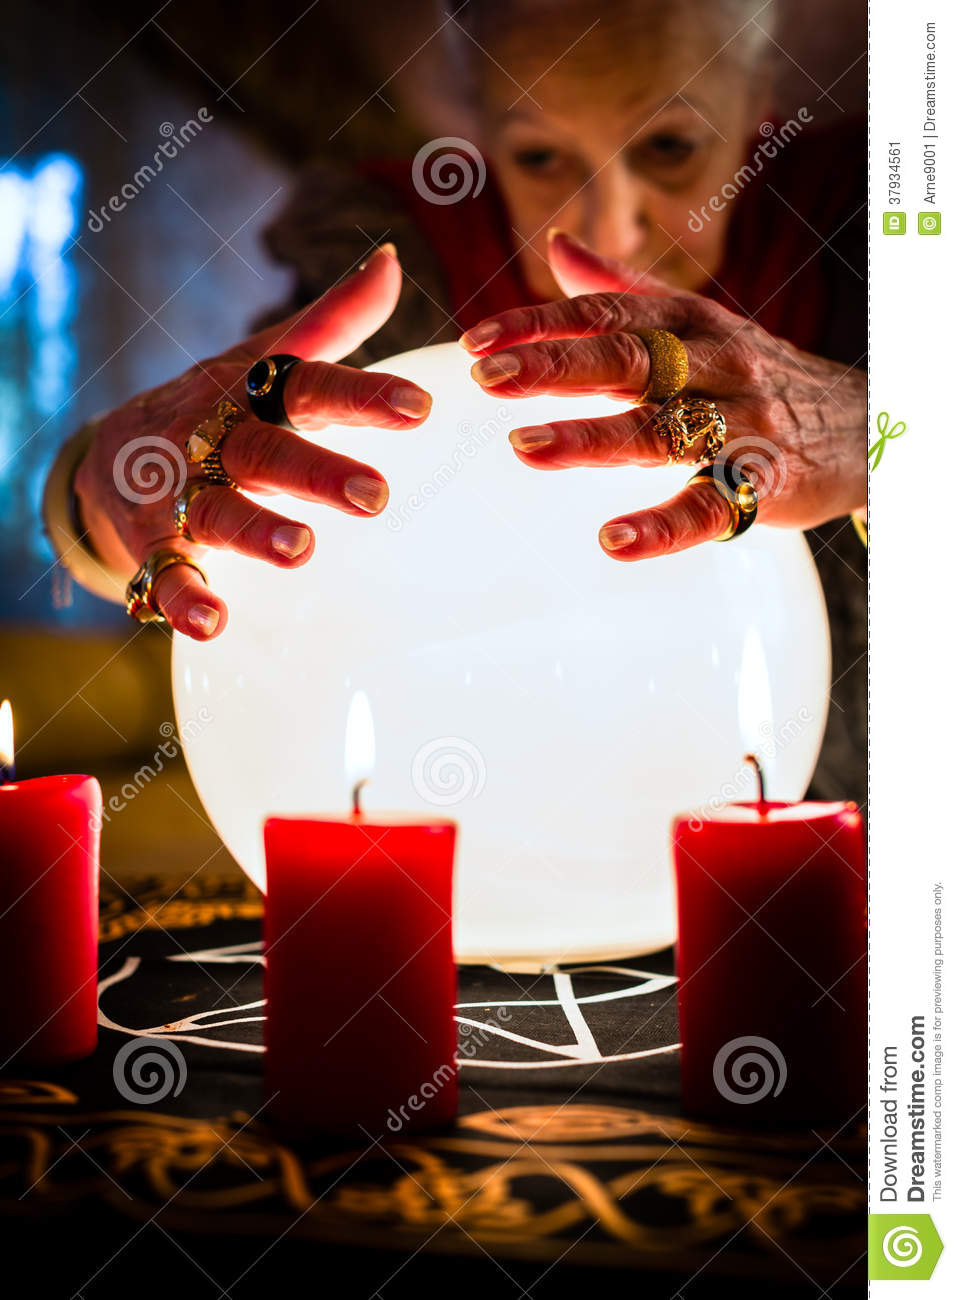 devin pendant un seance ou une session avec de la boule de cristal image stock image 37934561. Black Bedroom Furniture Sets. Home Design Ideas